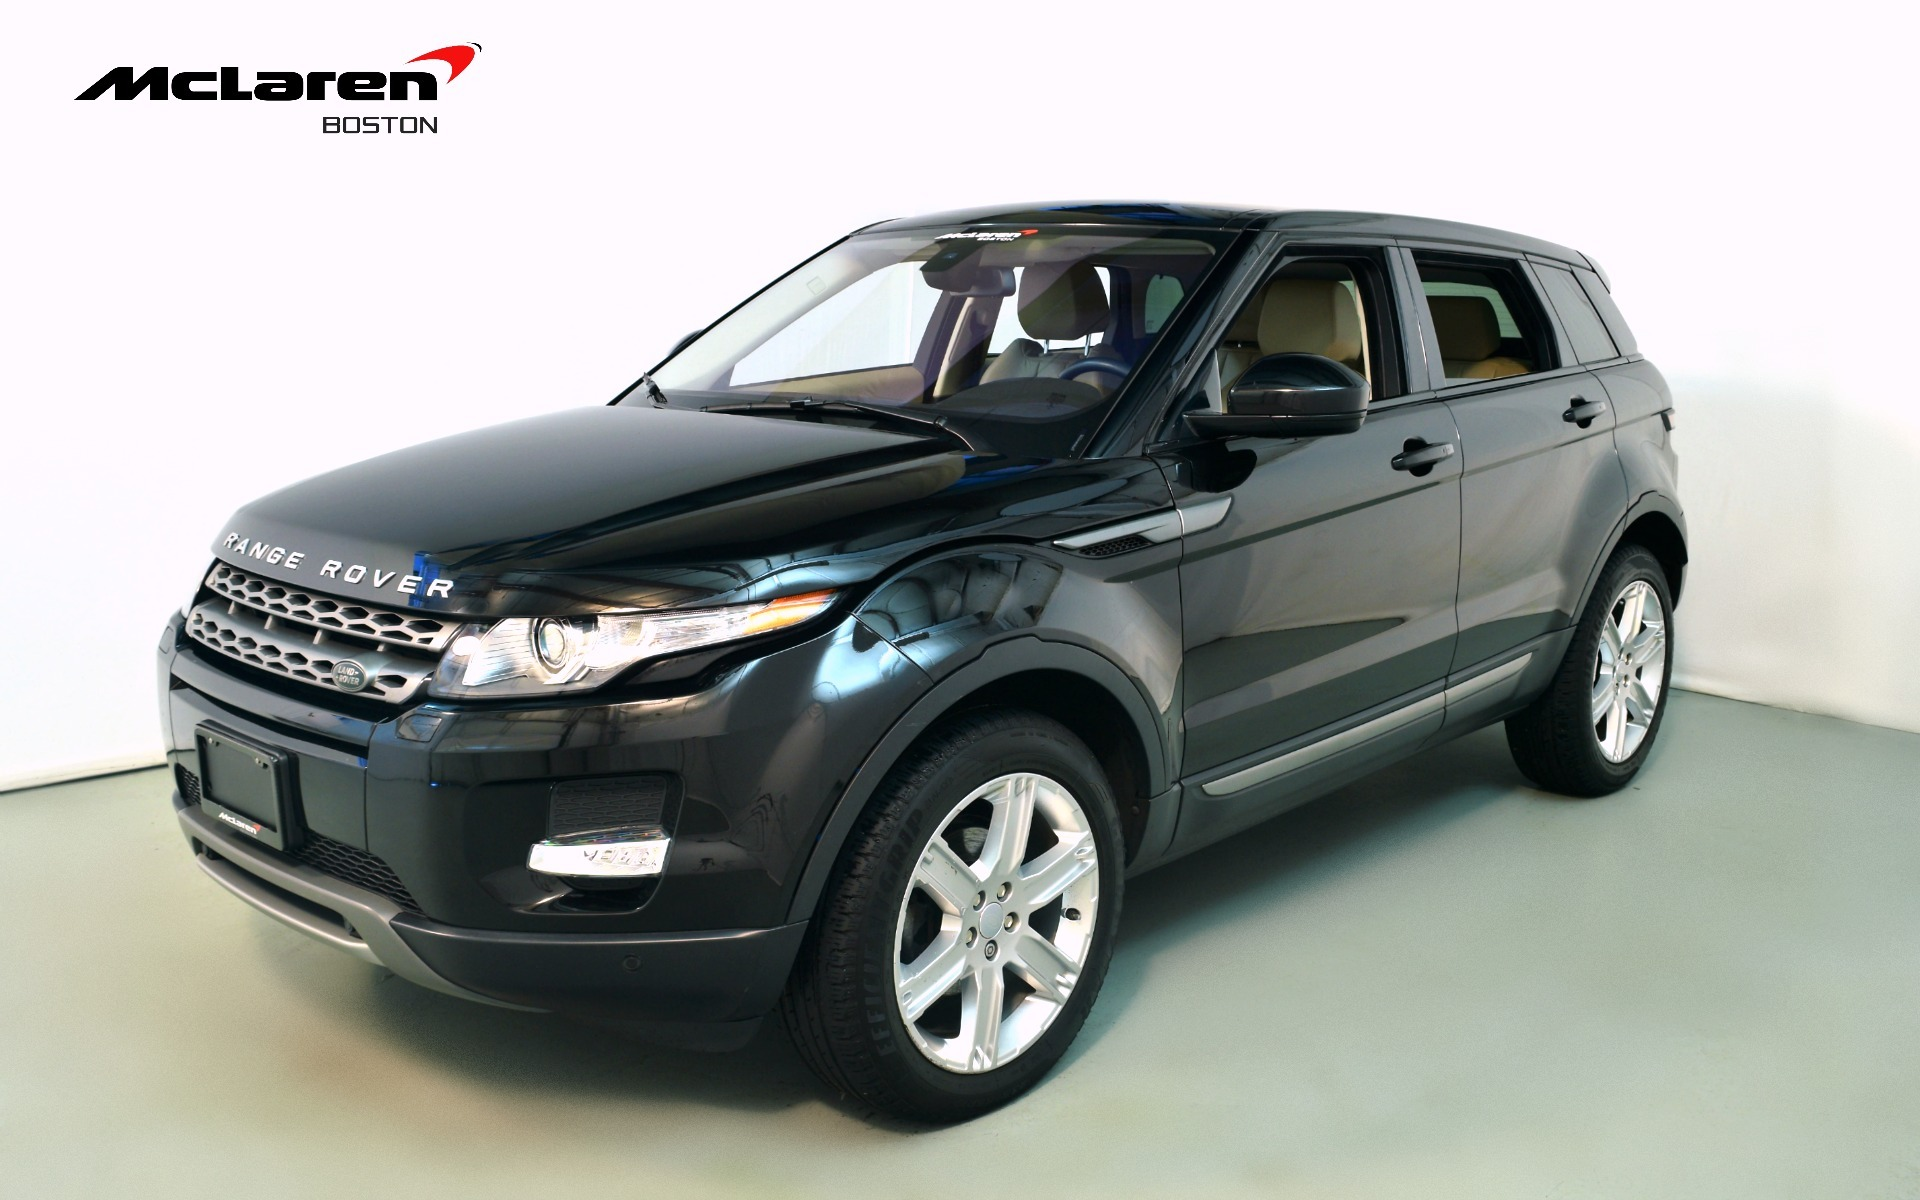 2015 land rover range rover evoque pure plus for sale in norwell ma 070185 mclaren boston. Black Bedroom Furniture Sets. Home Design Ideas